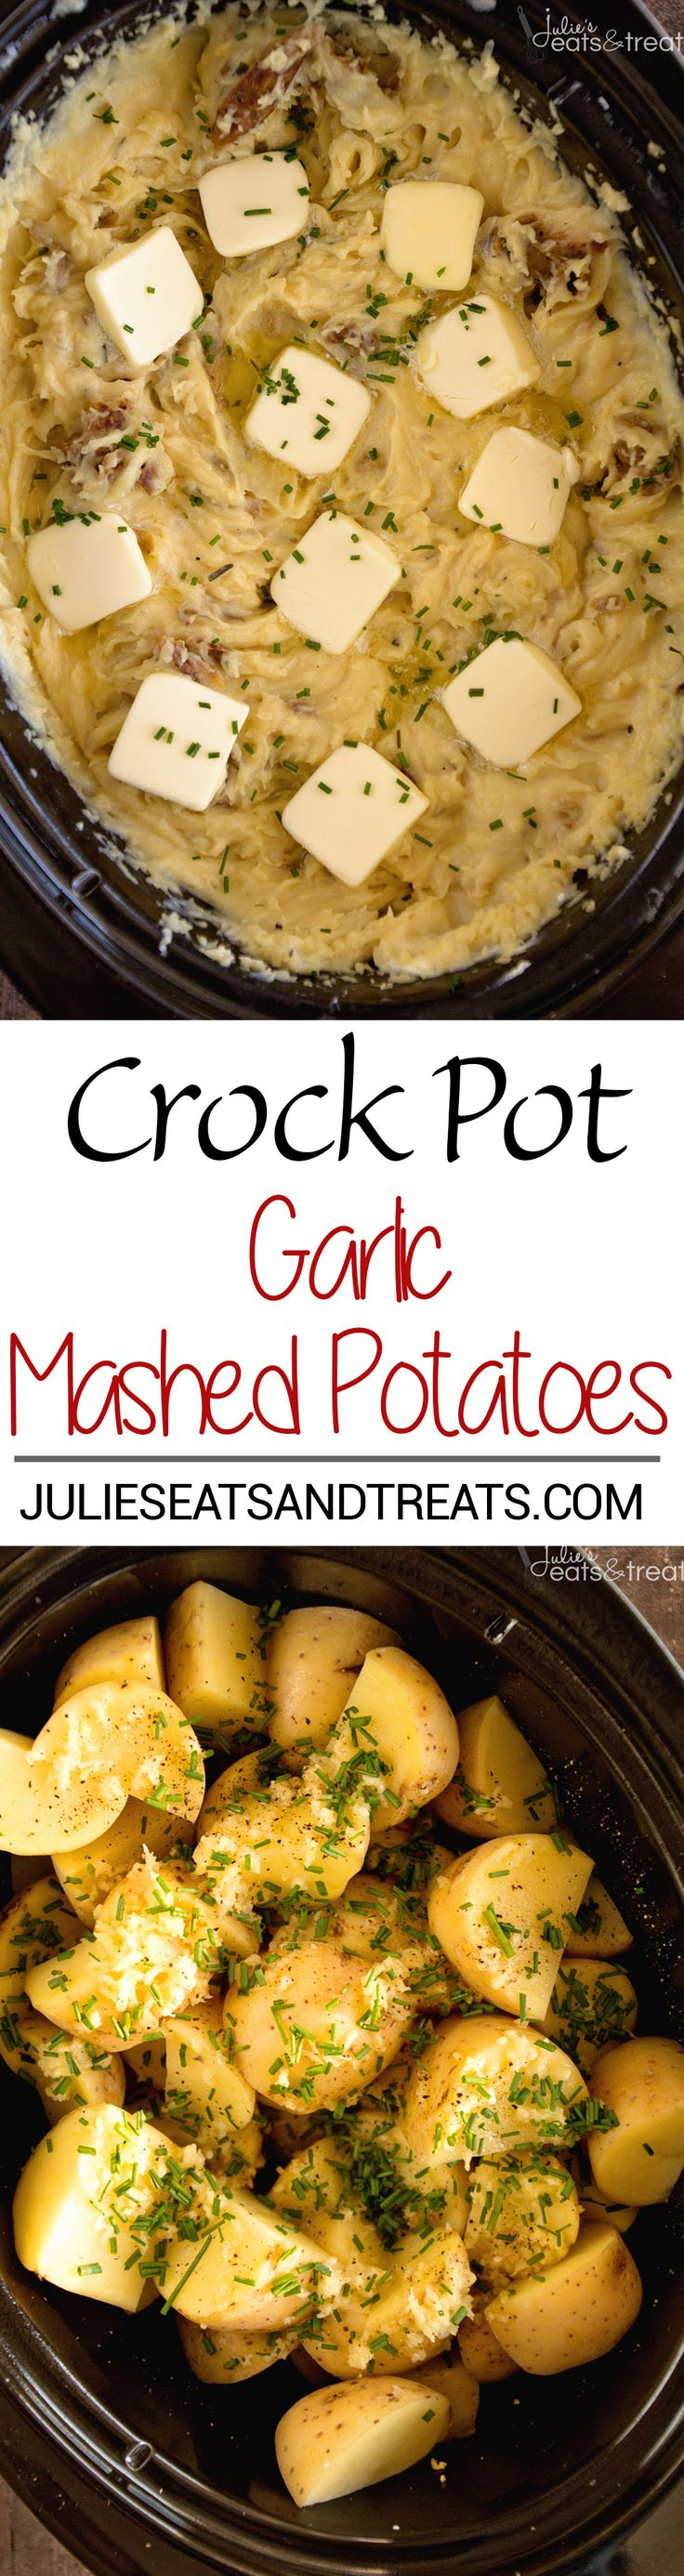 Crock Pot Garlic Mashed Potatoes Recipe ~ Slow Cooked Creamy Mashed Potatoes Loaded with Garlic, Cream Cheese and Parmesan!